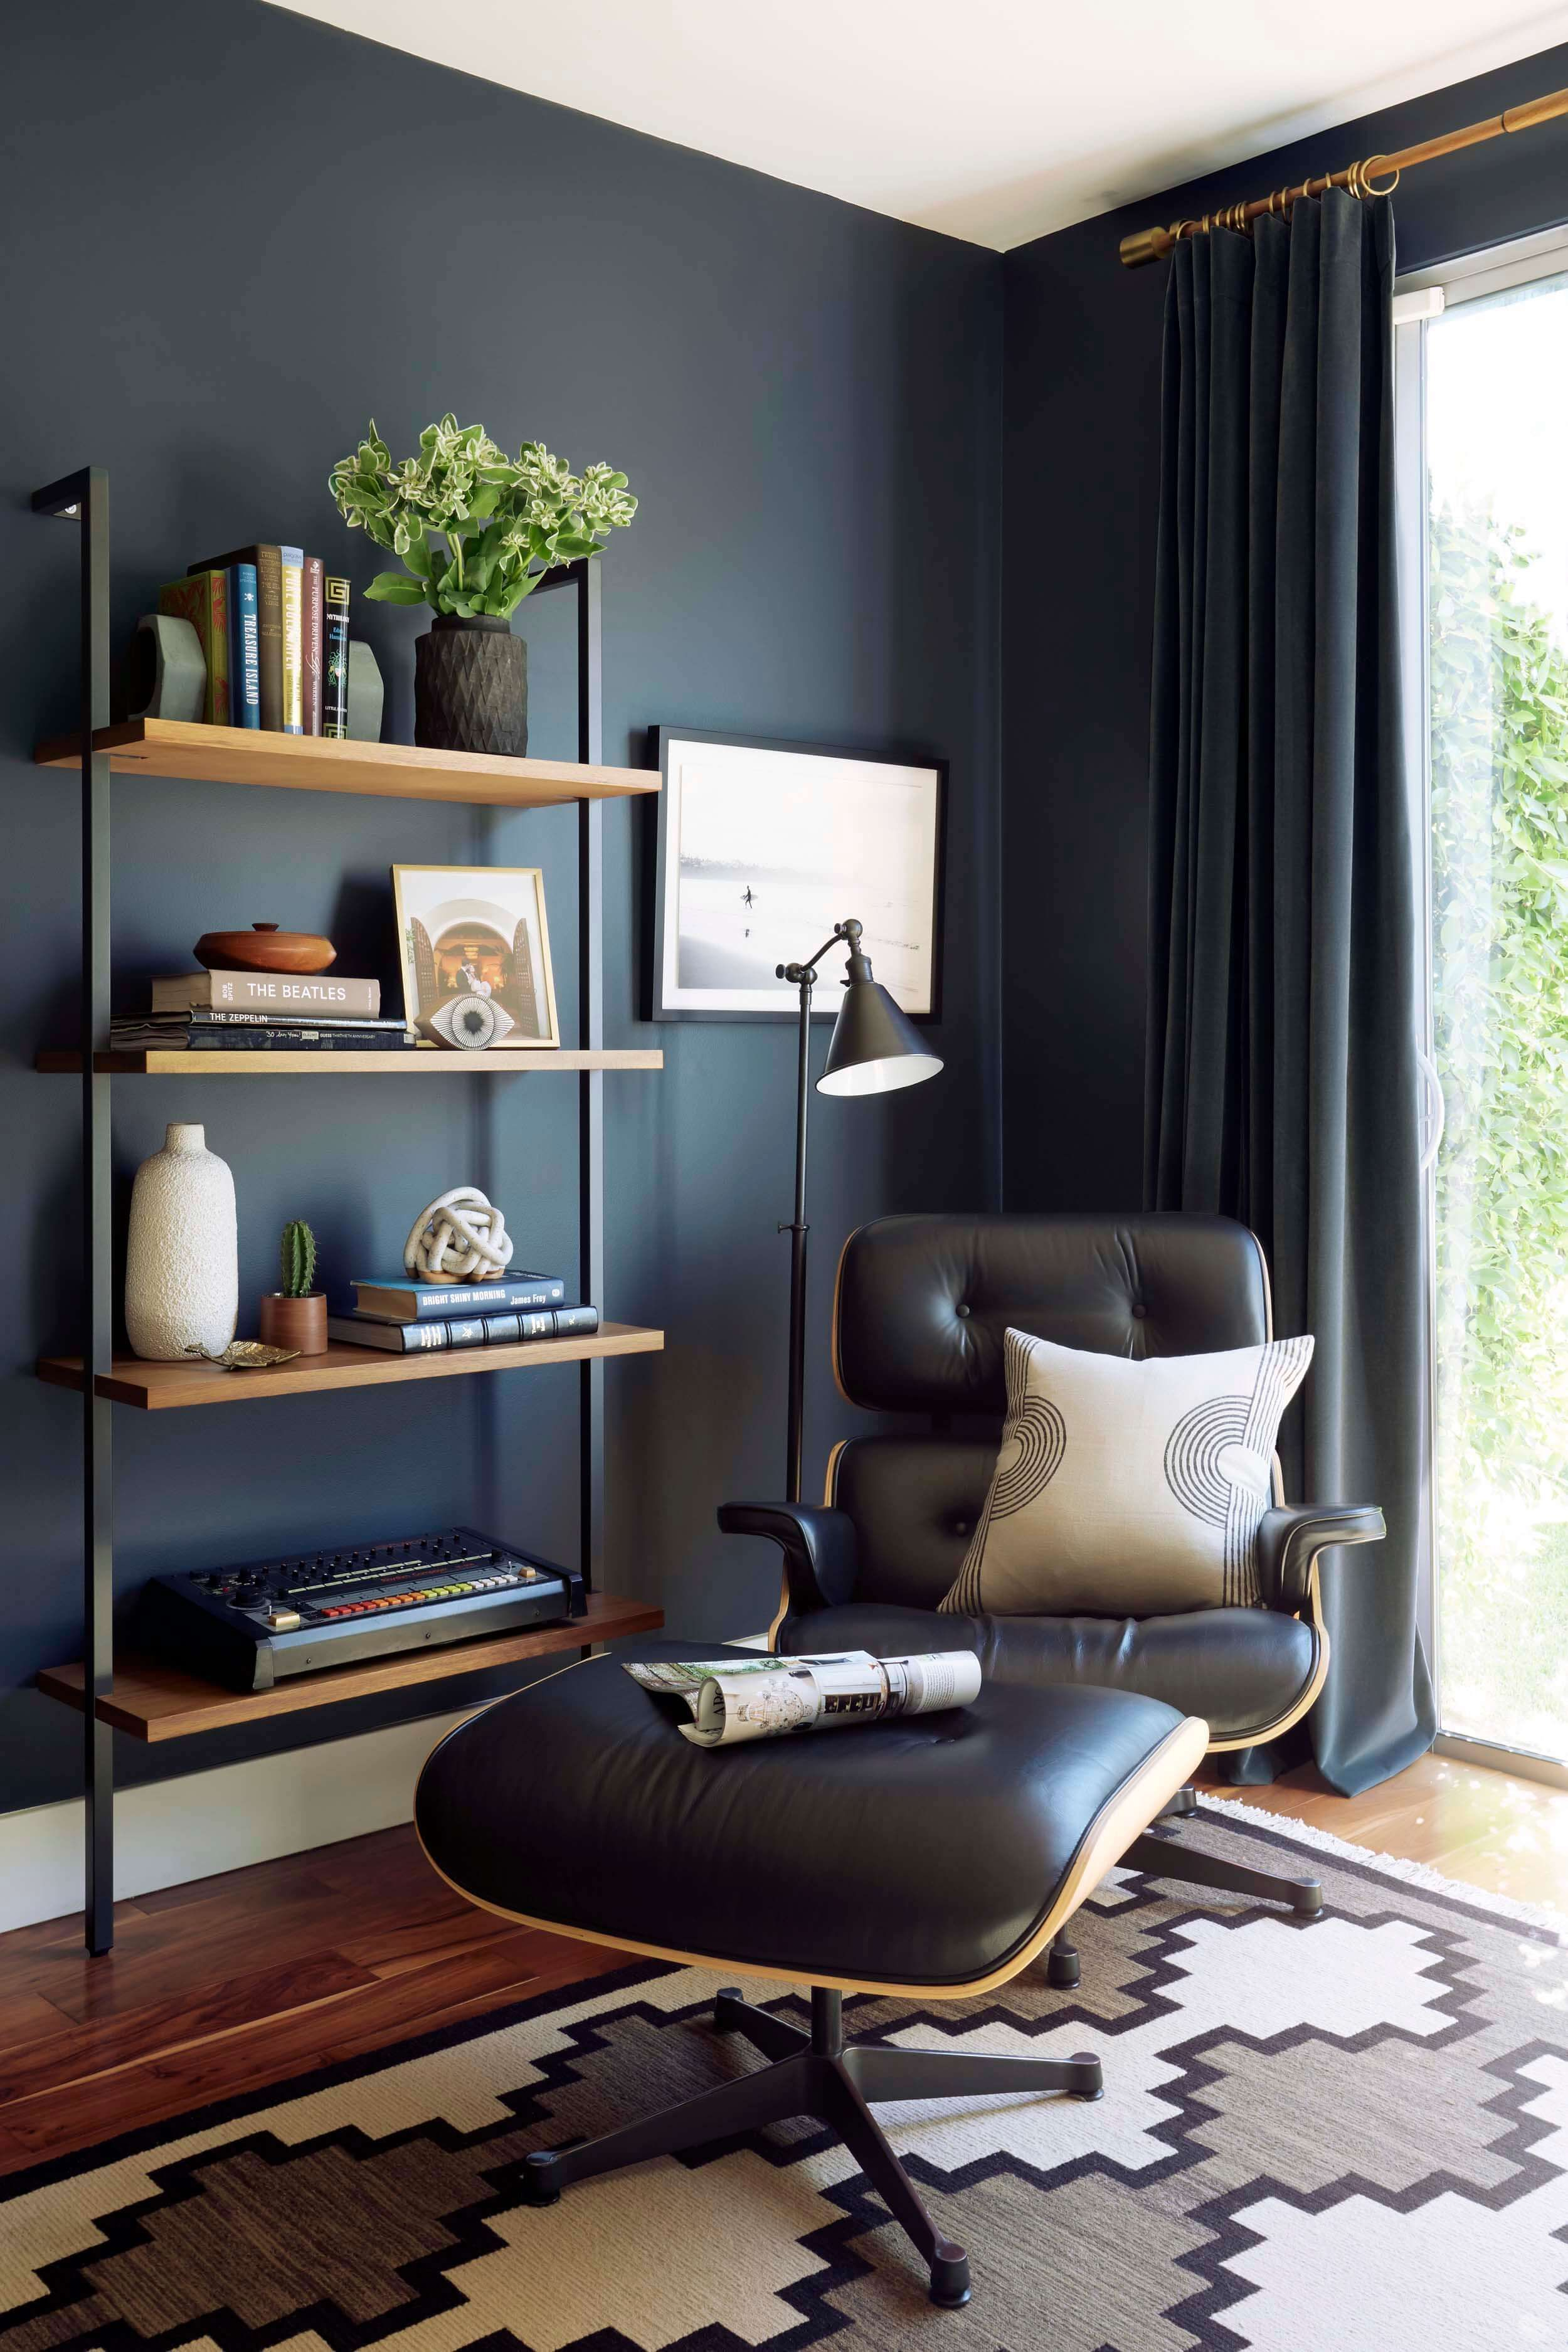 How To Pick The Right Accent Chair